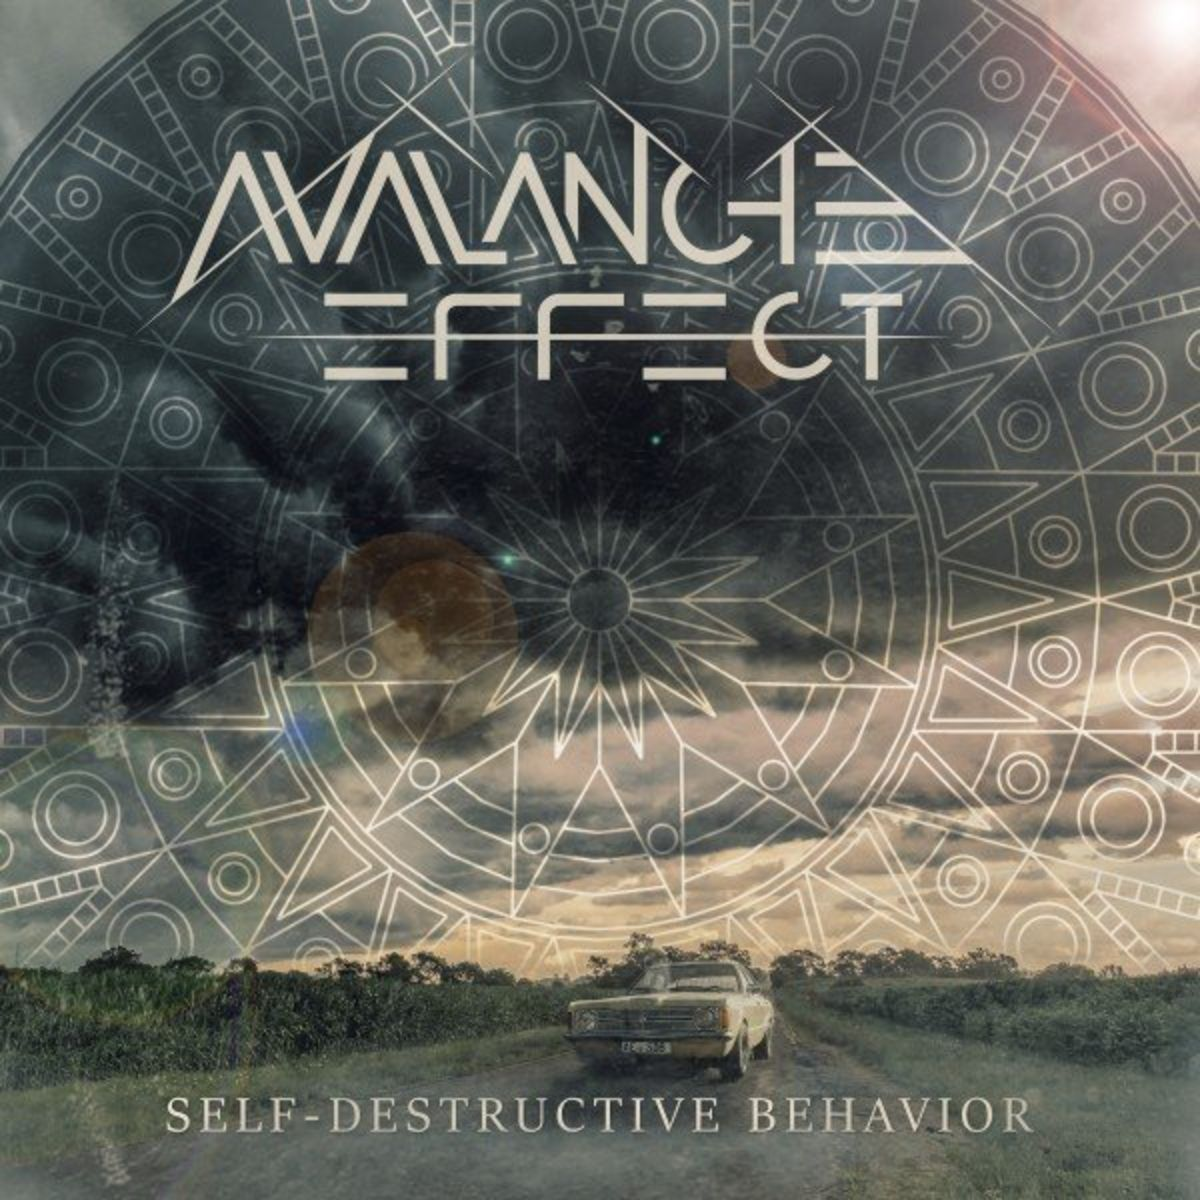 Avalanche Effect - Self-Destructive Behavior [single] (2020)